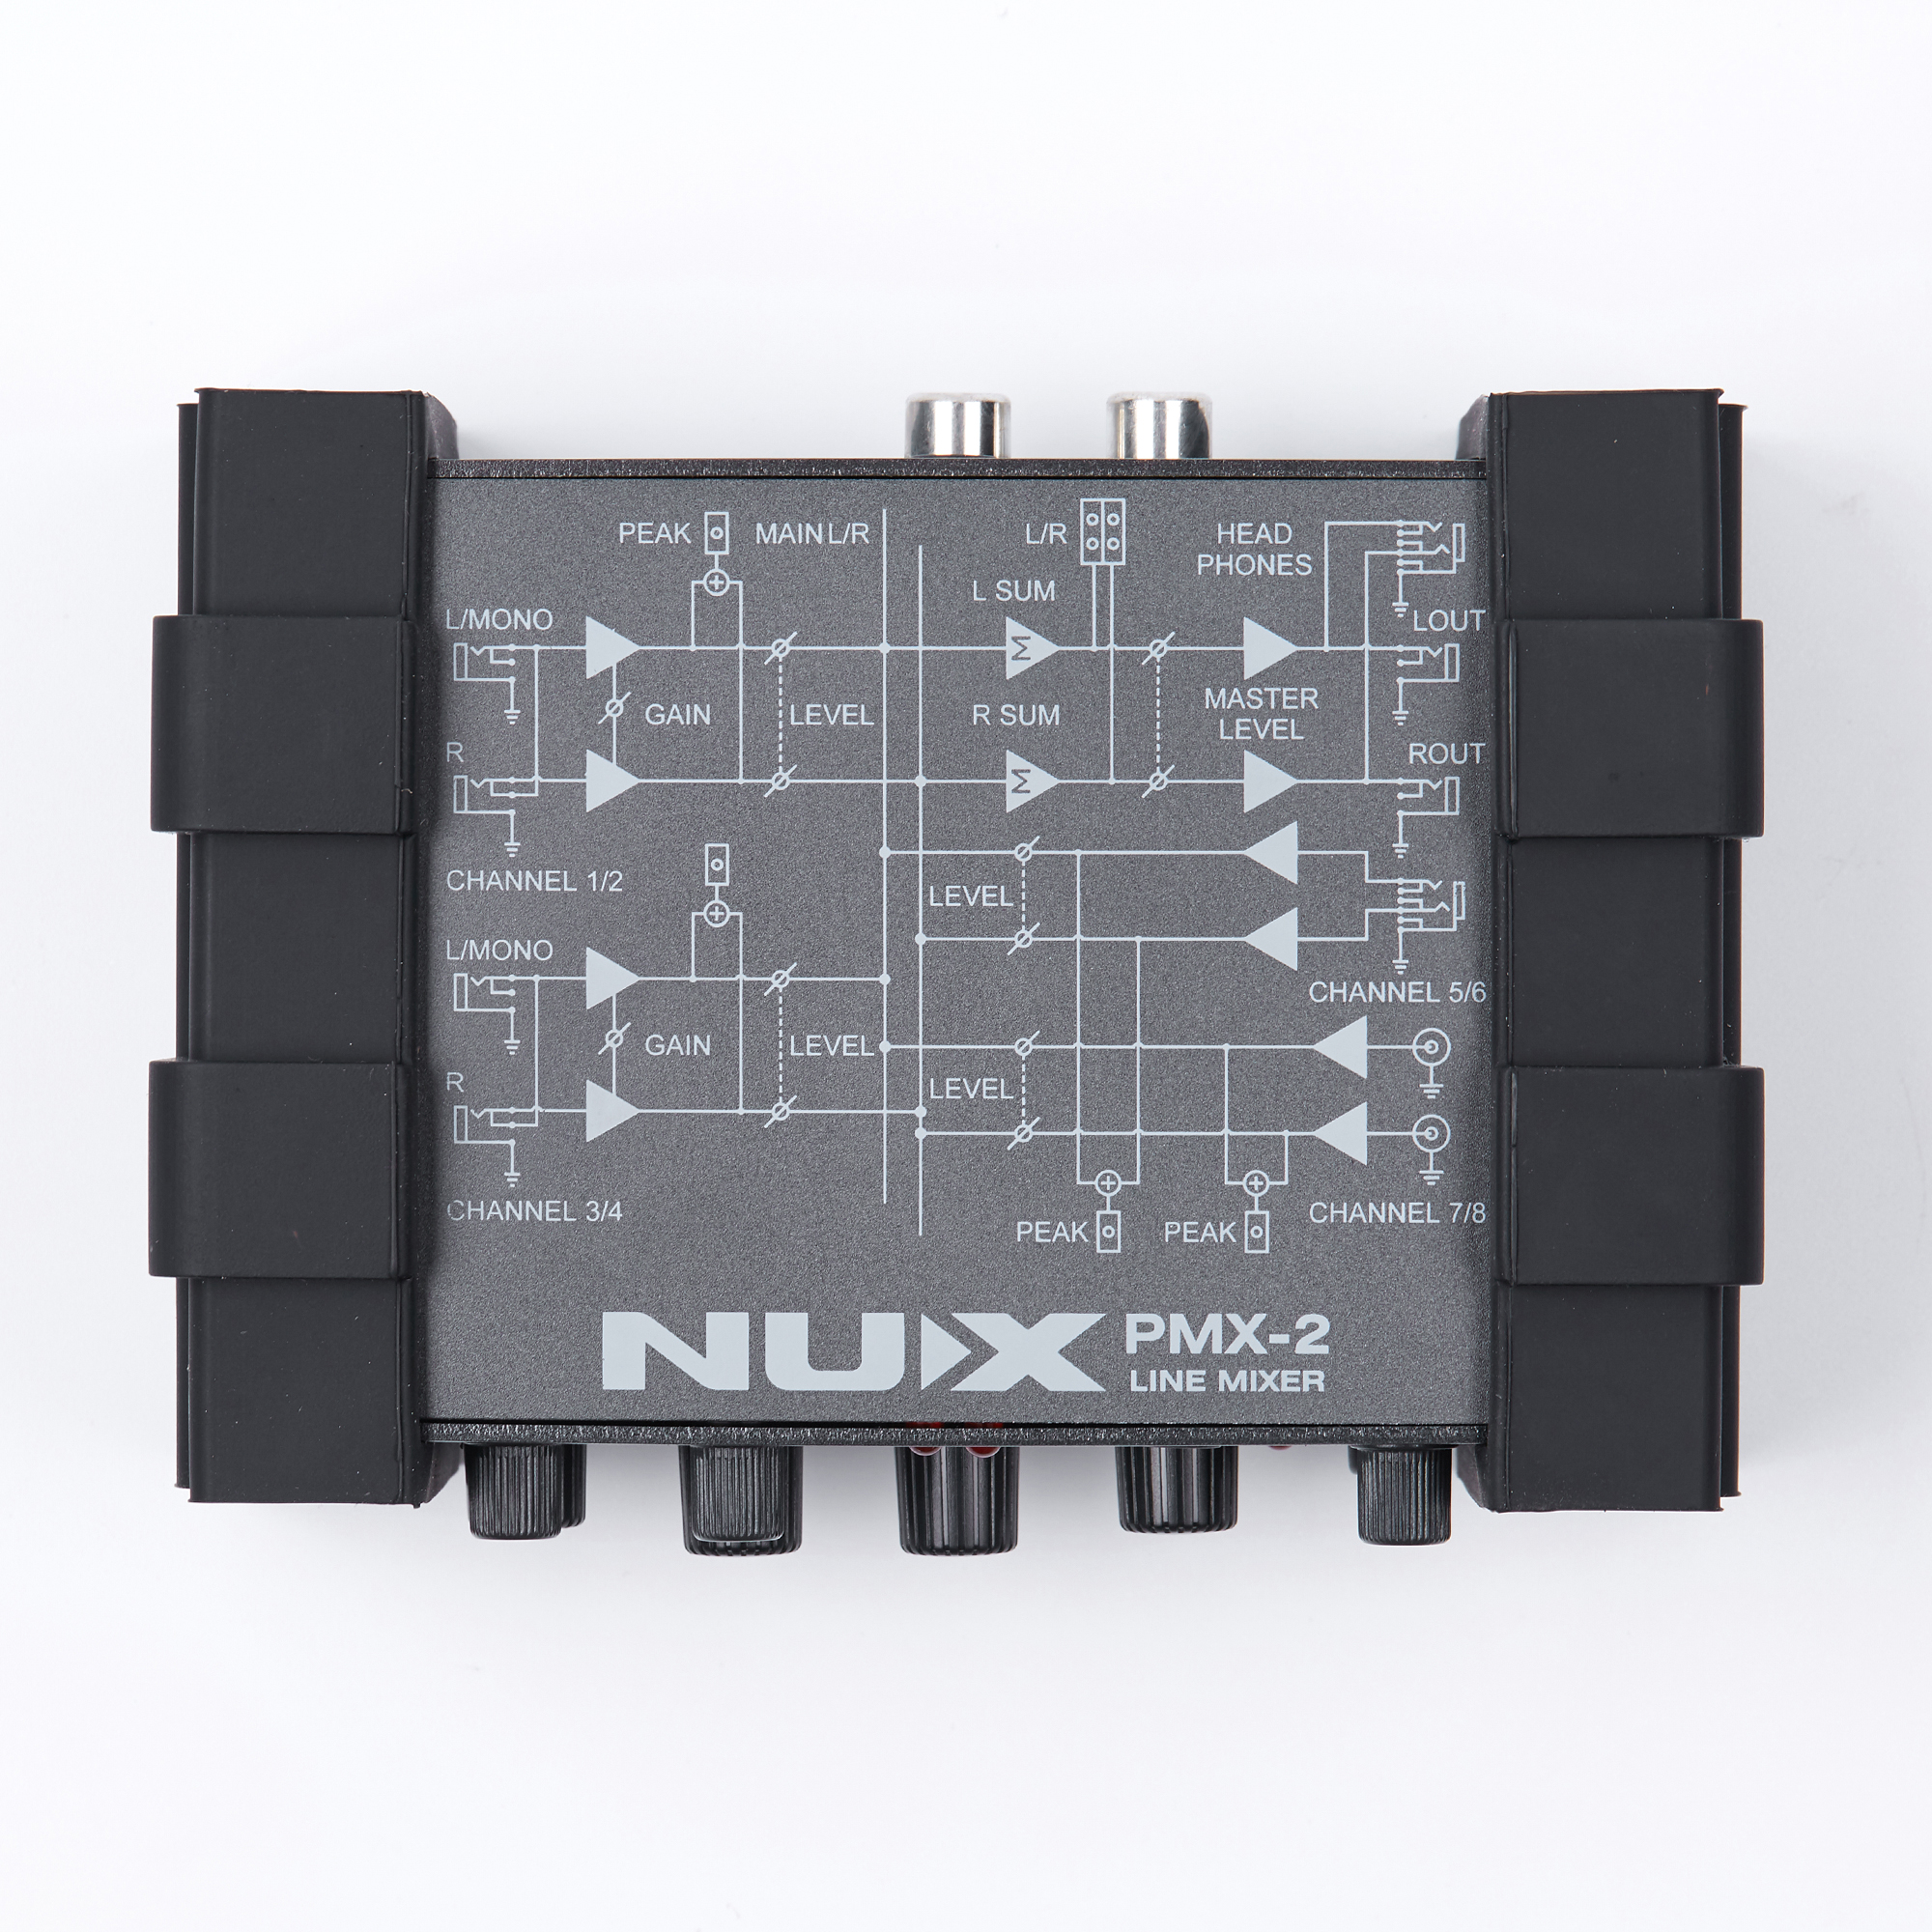 Gain Control 8 Inputs and 2 Outputs NUX PMX-2 Multi-Channel Mini Mixer 30 Musical Instruments Accessories for Guitar Bass Player платье quelle fly 1020196